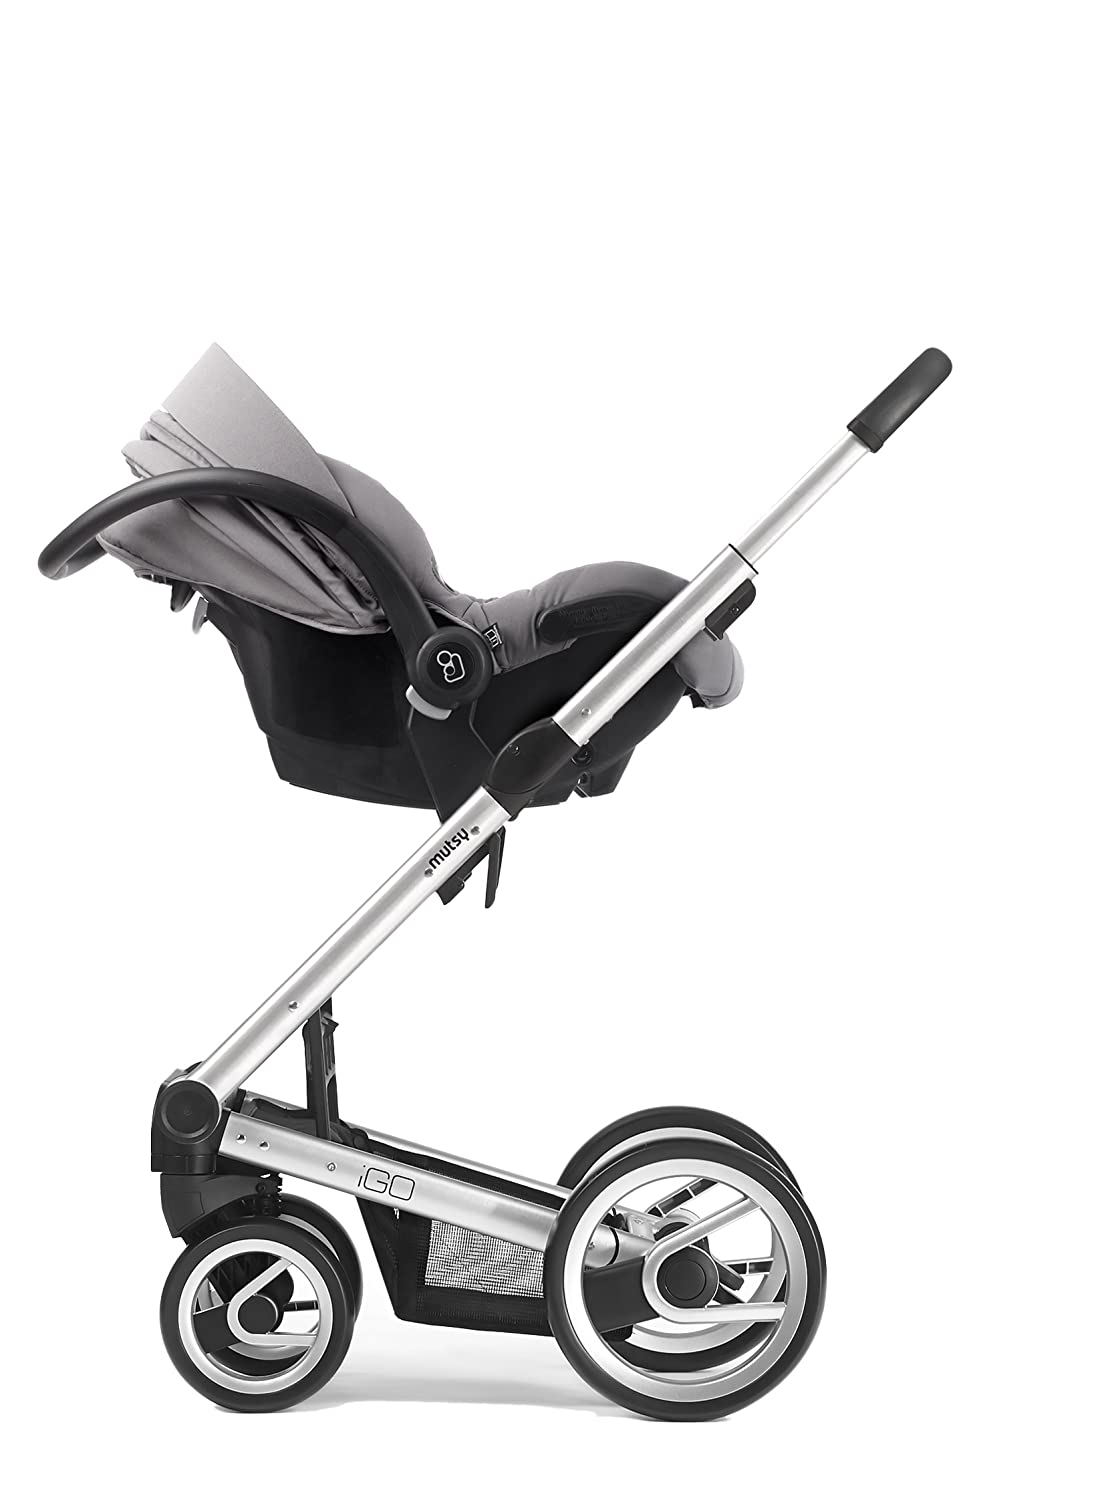 Mutsy Igo Stroller Car Seat Adapter for Maxi-Cosi, Black by Mutsy: Amazon.es: Bebé